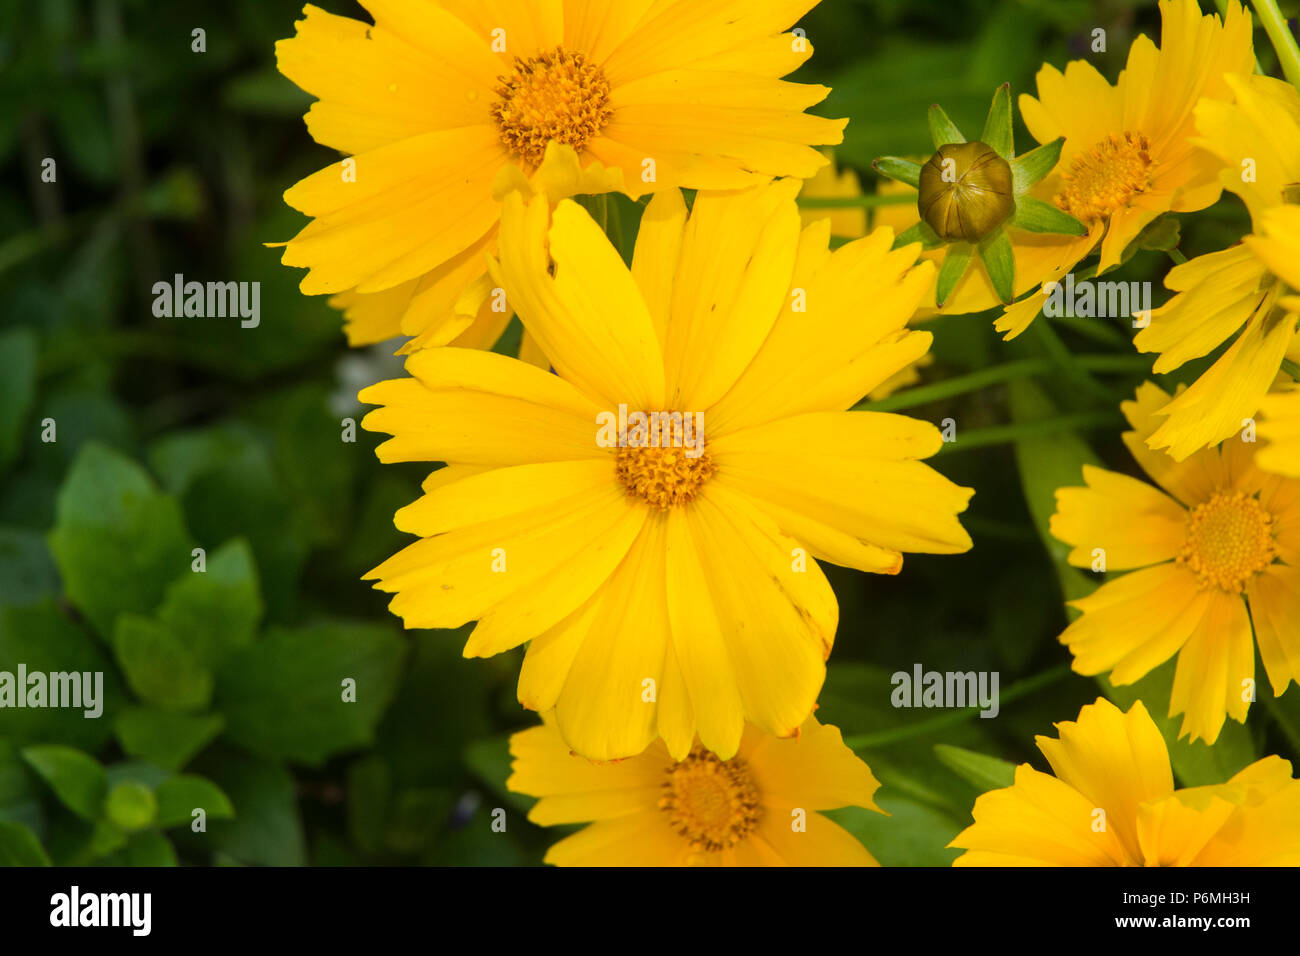 Bursting with yellow color is dynamic. - Stock Image